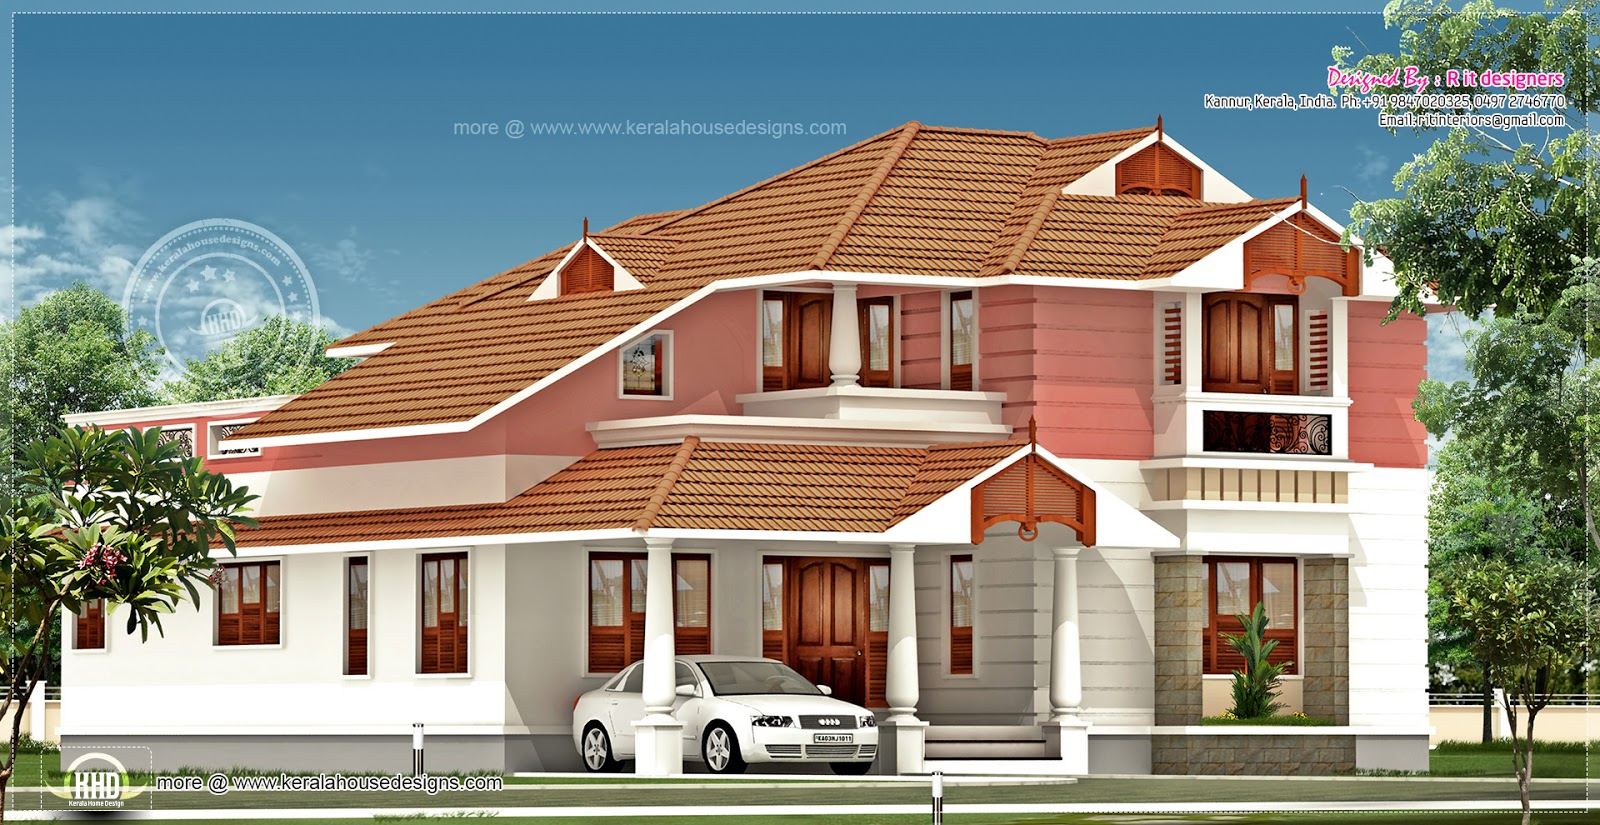 2348 Sq Feet Slanting Roof House Design Plans